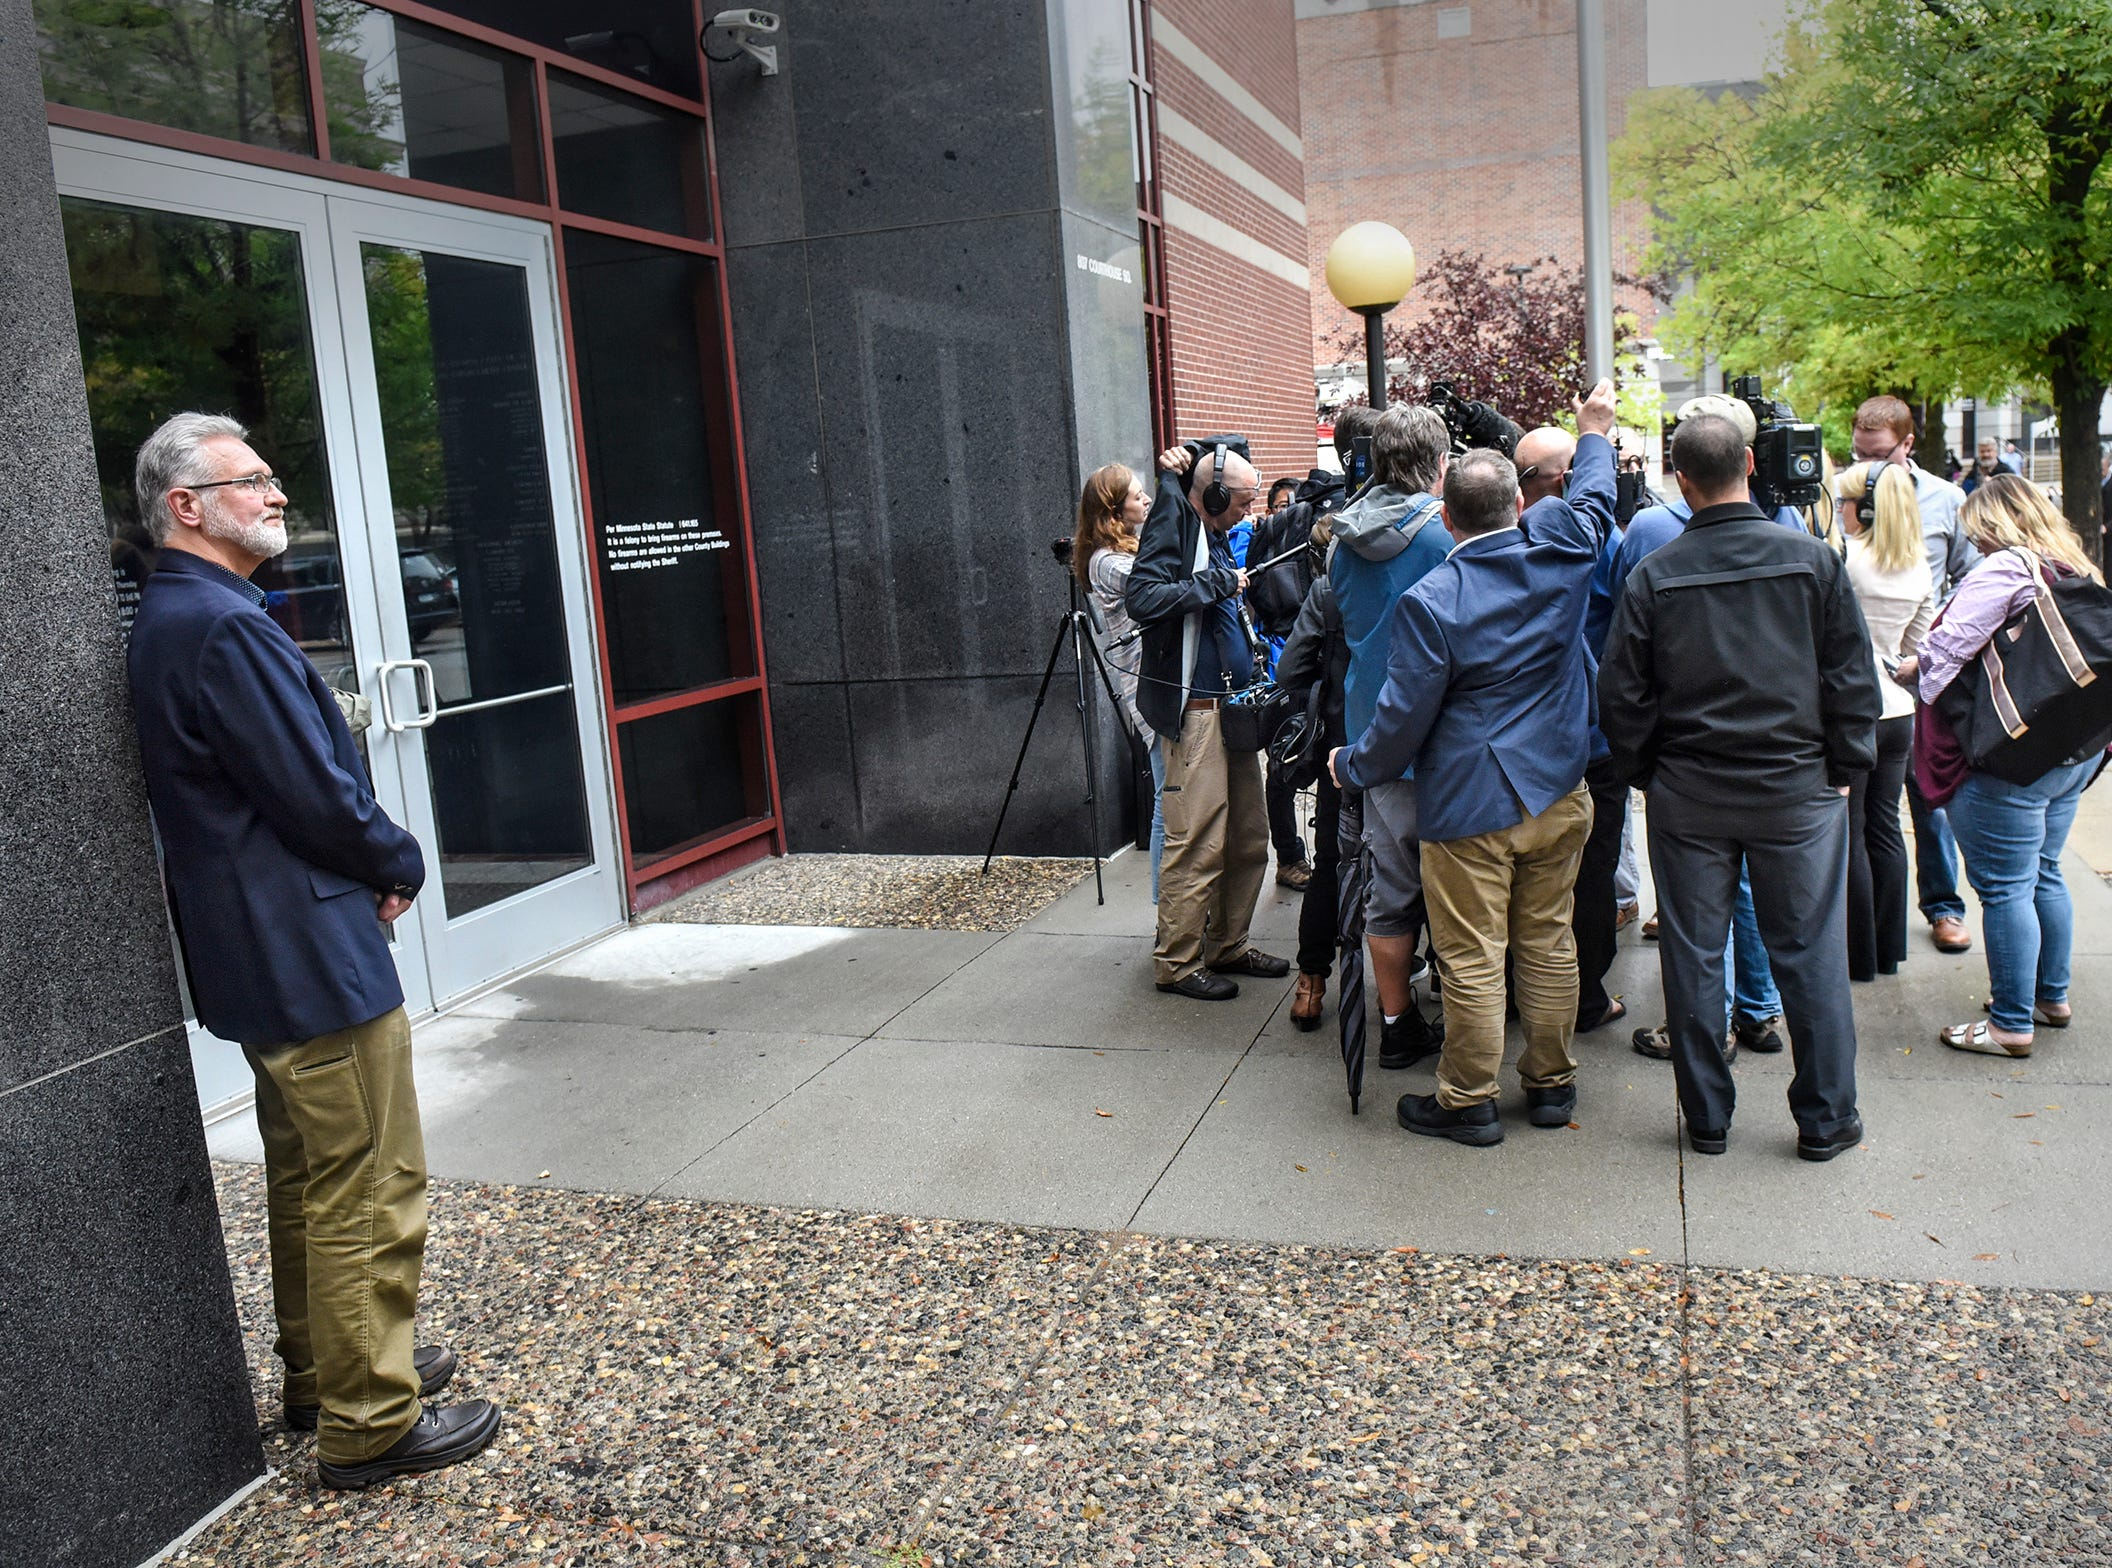 Jerry Wetterling stands alone as reporters circle around former FBI agent Al Garber following a press conference for the release of investigative files in the case of his son Jacob Thursday, Sept. 20, 2018, in St. Cloud. More than 40,000 pages of investigative files on the case were released that day.